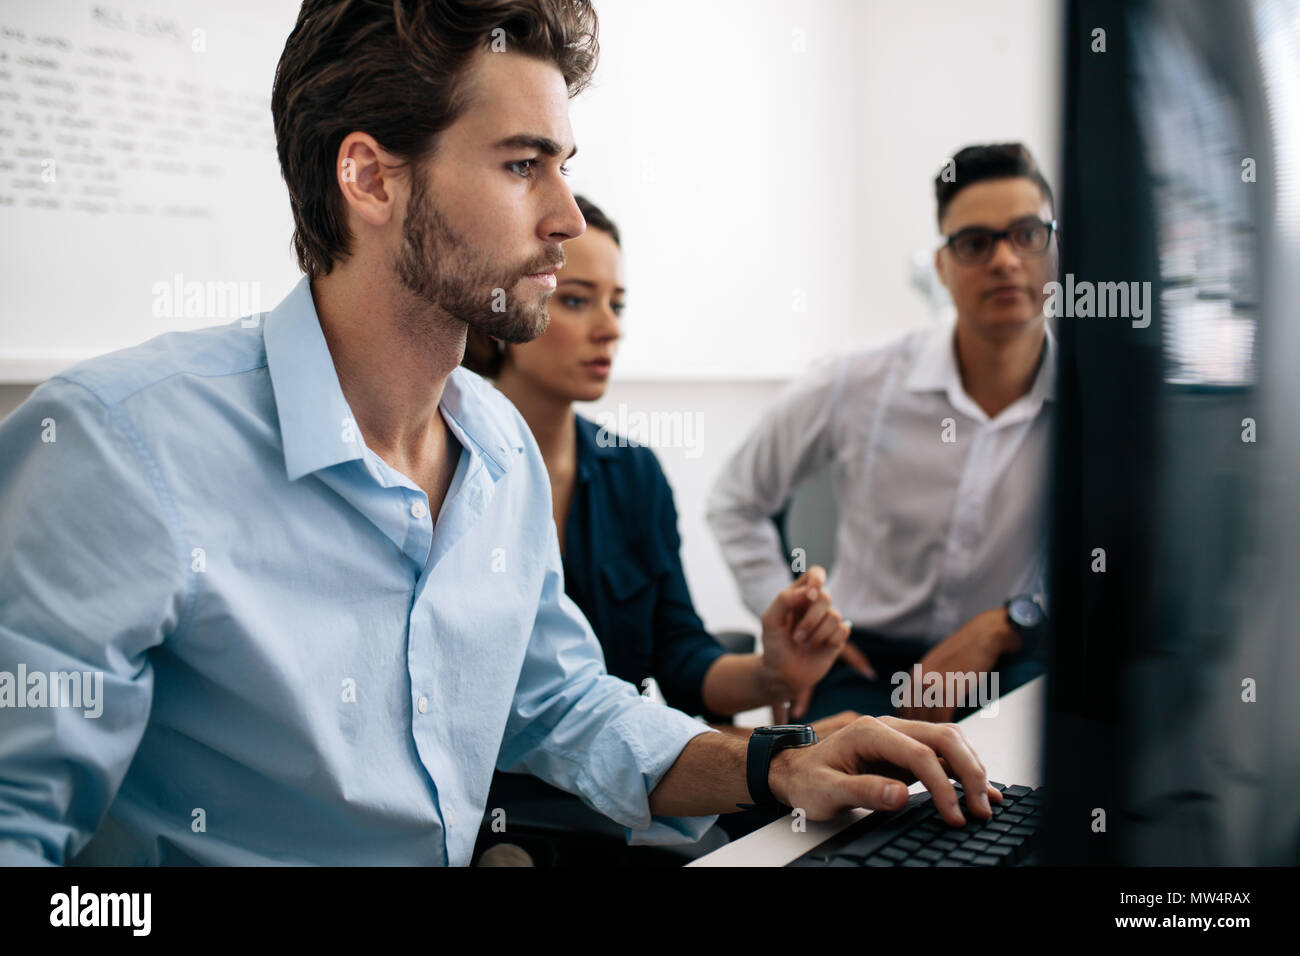 Software developers sitting in front of computer and working in office. Two men and a woman looking at computer and developing applications in office. - Stock Image